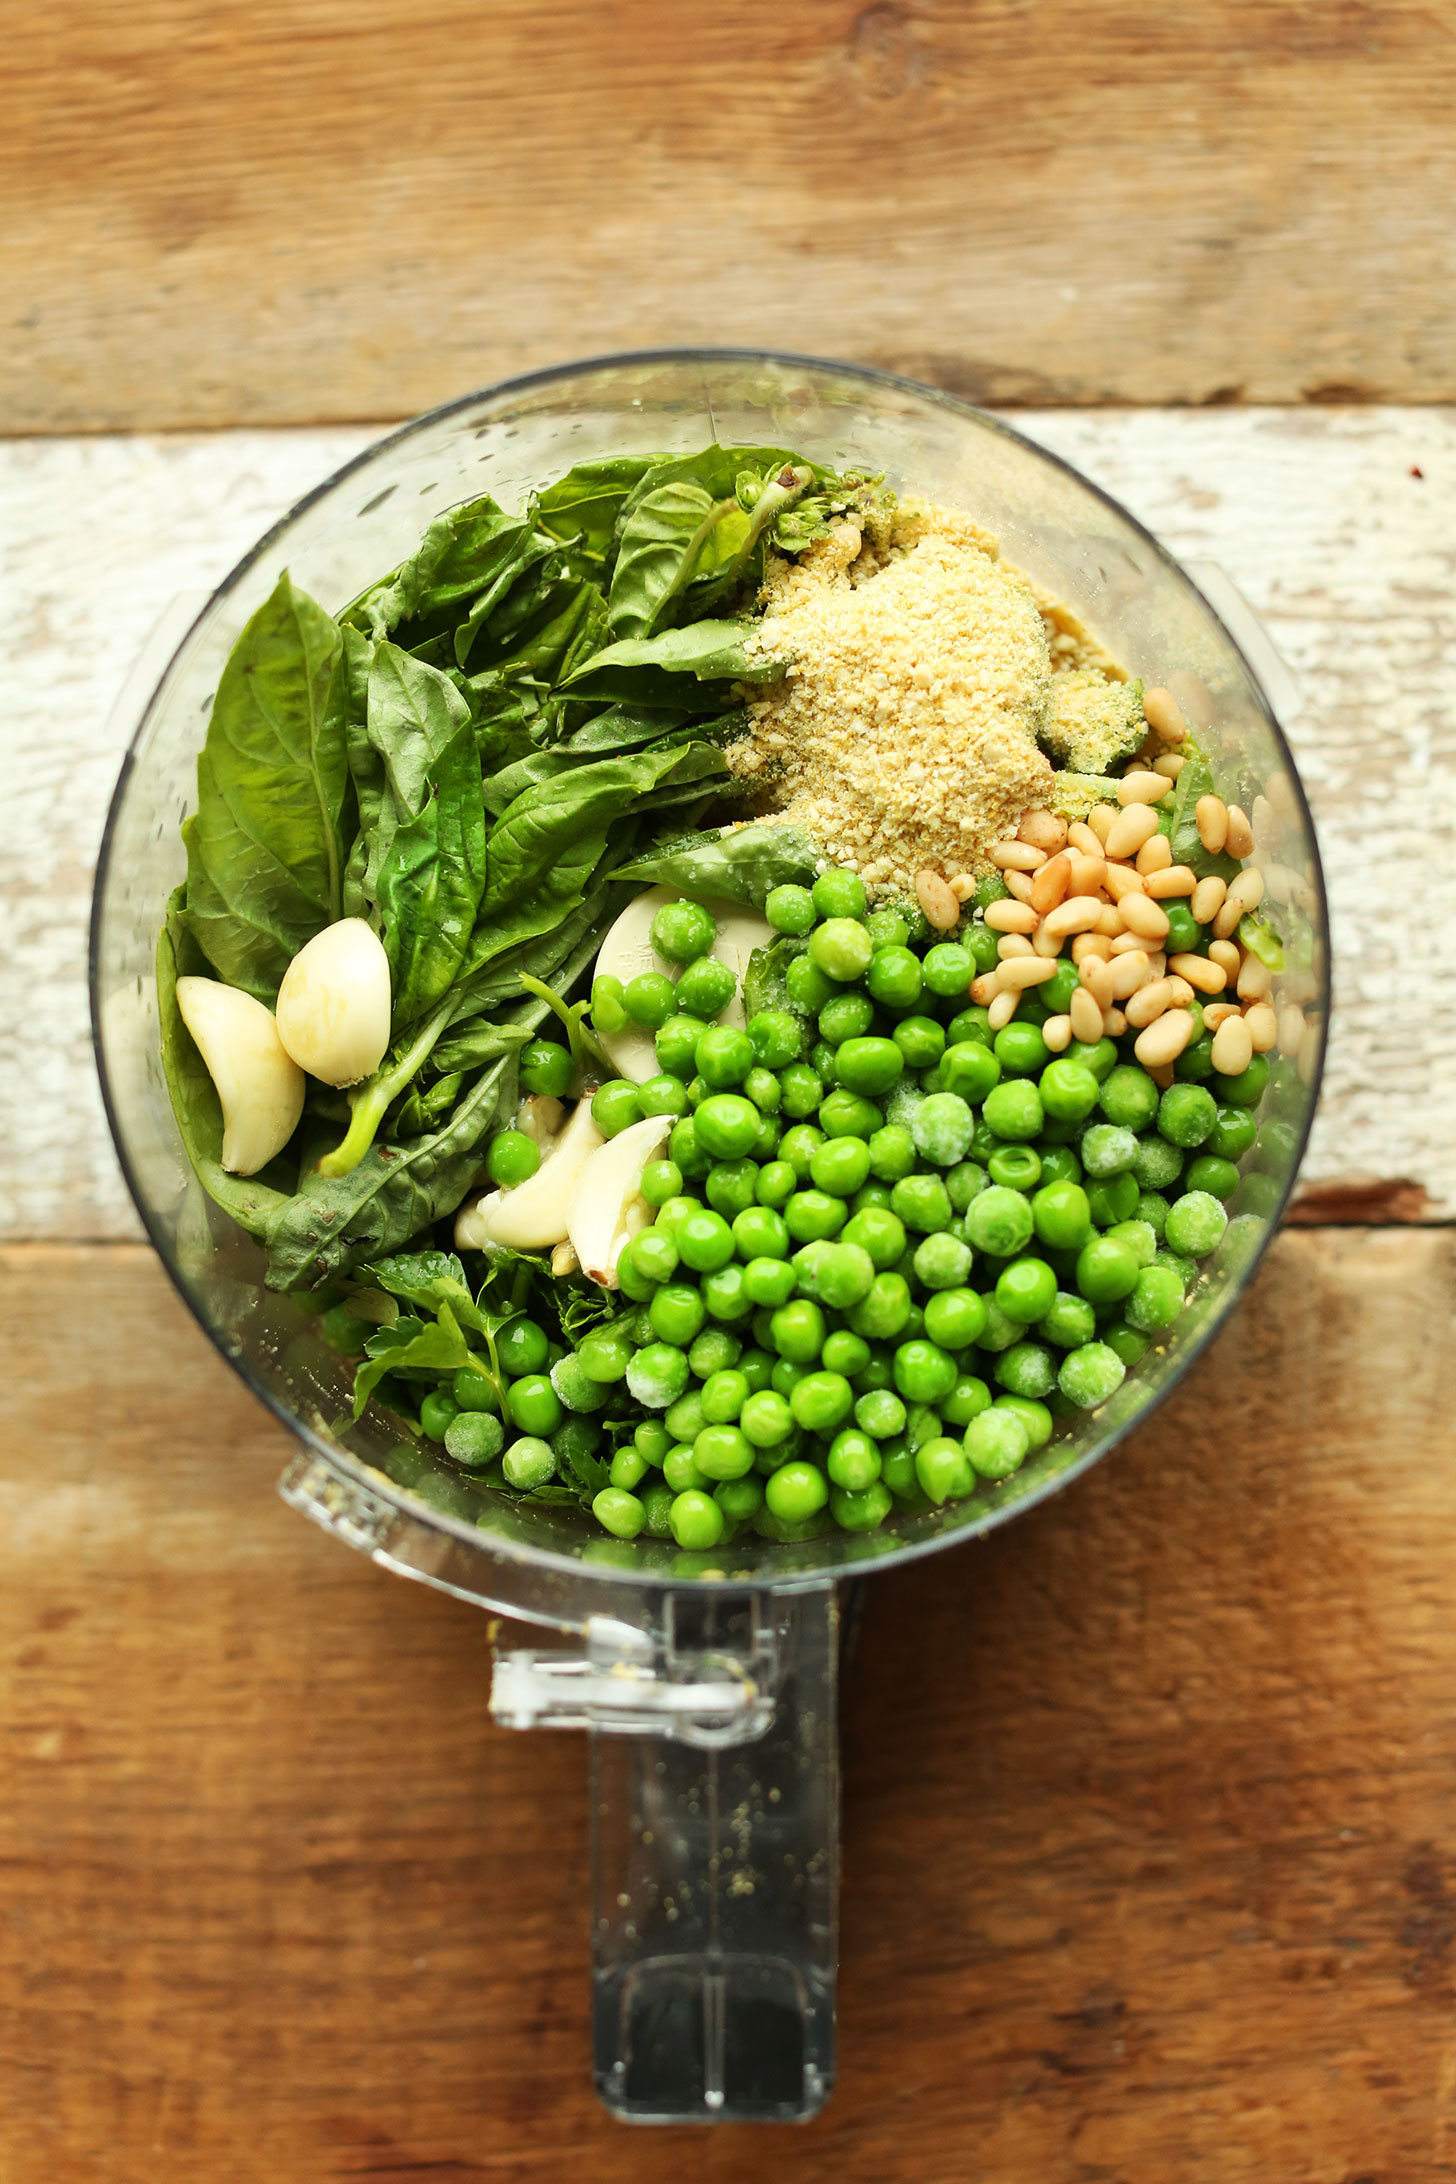 Food processor with ingredients for making our homemade vegan Pea Pesto recipe